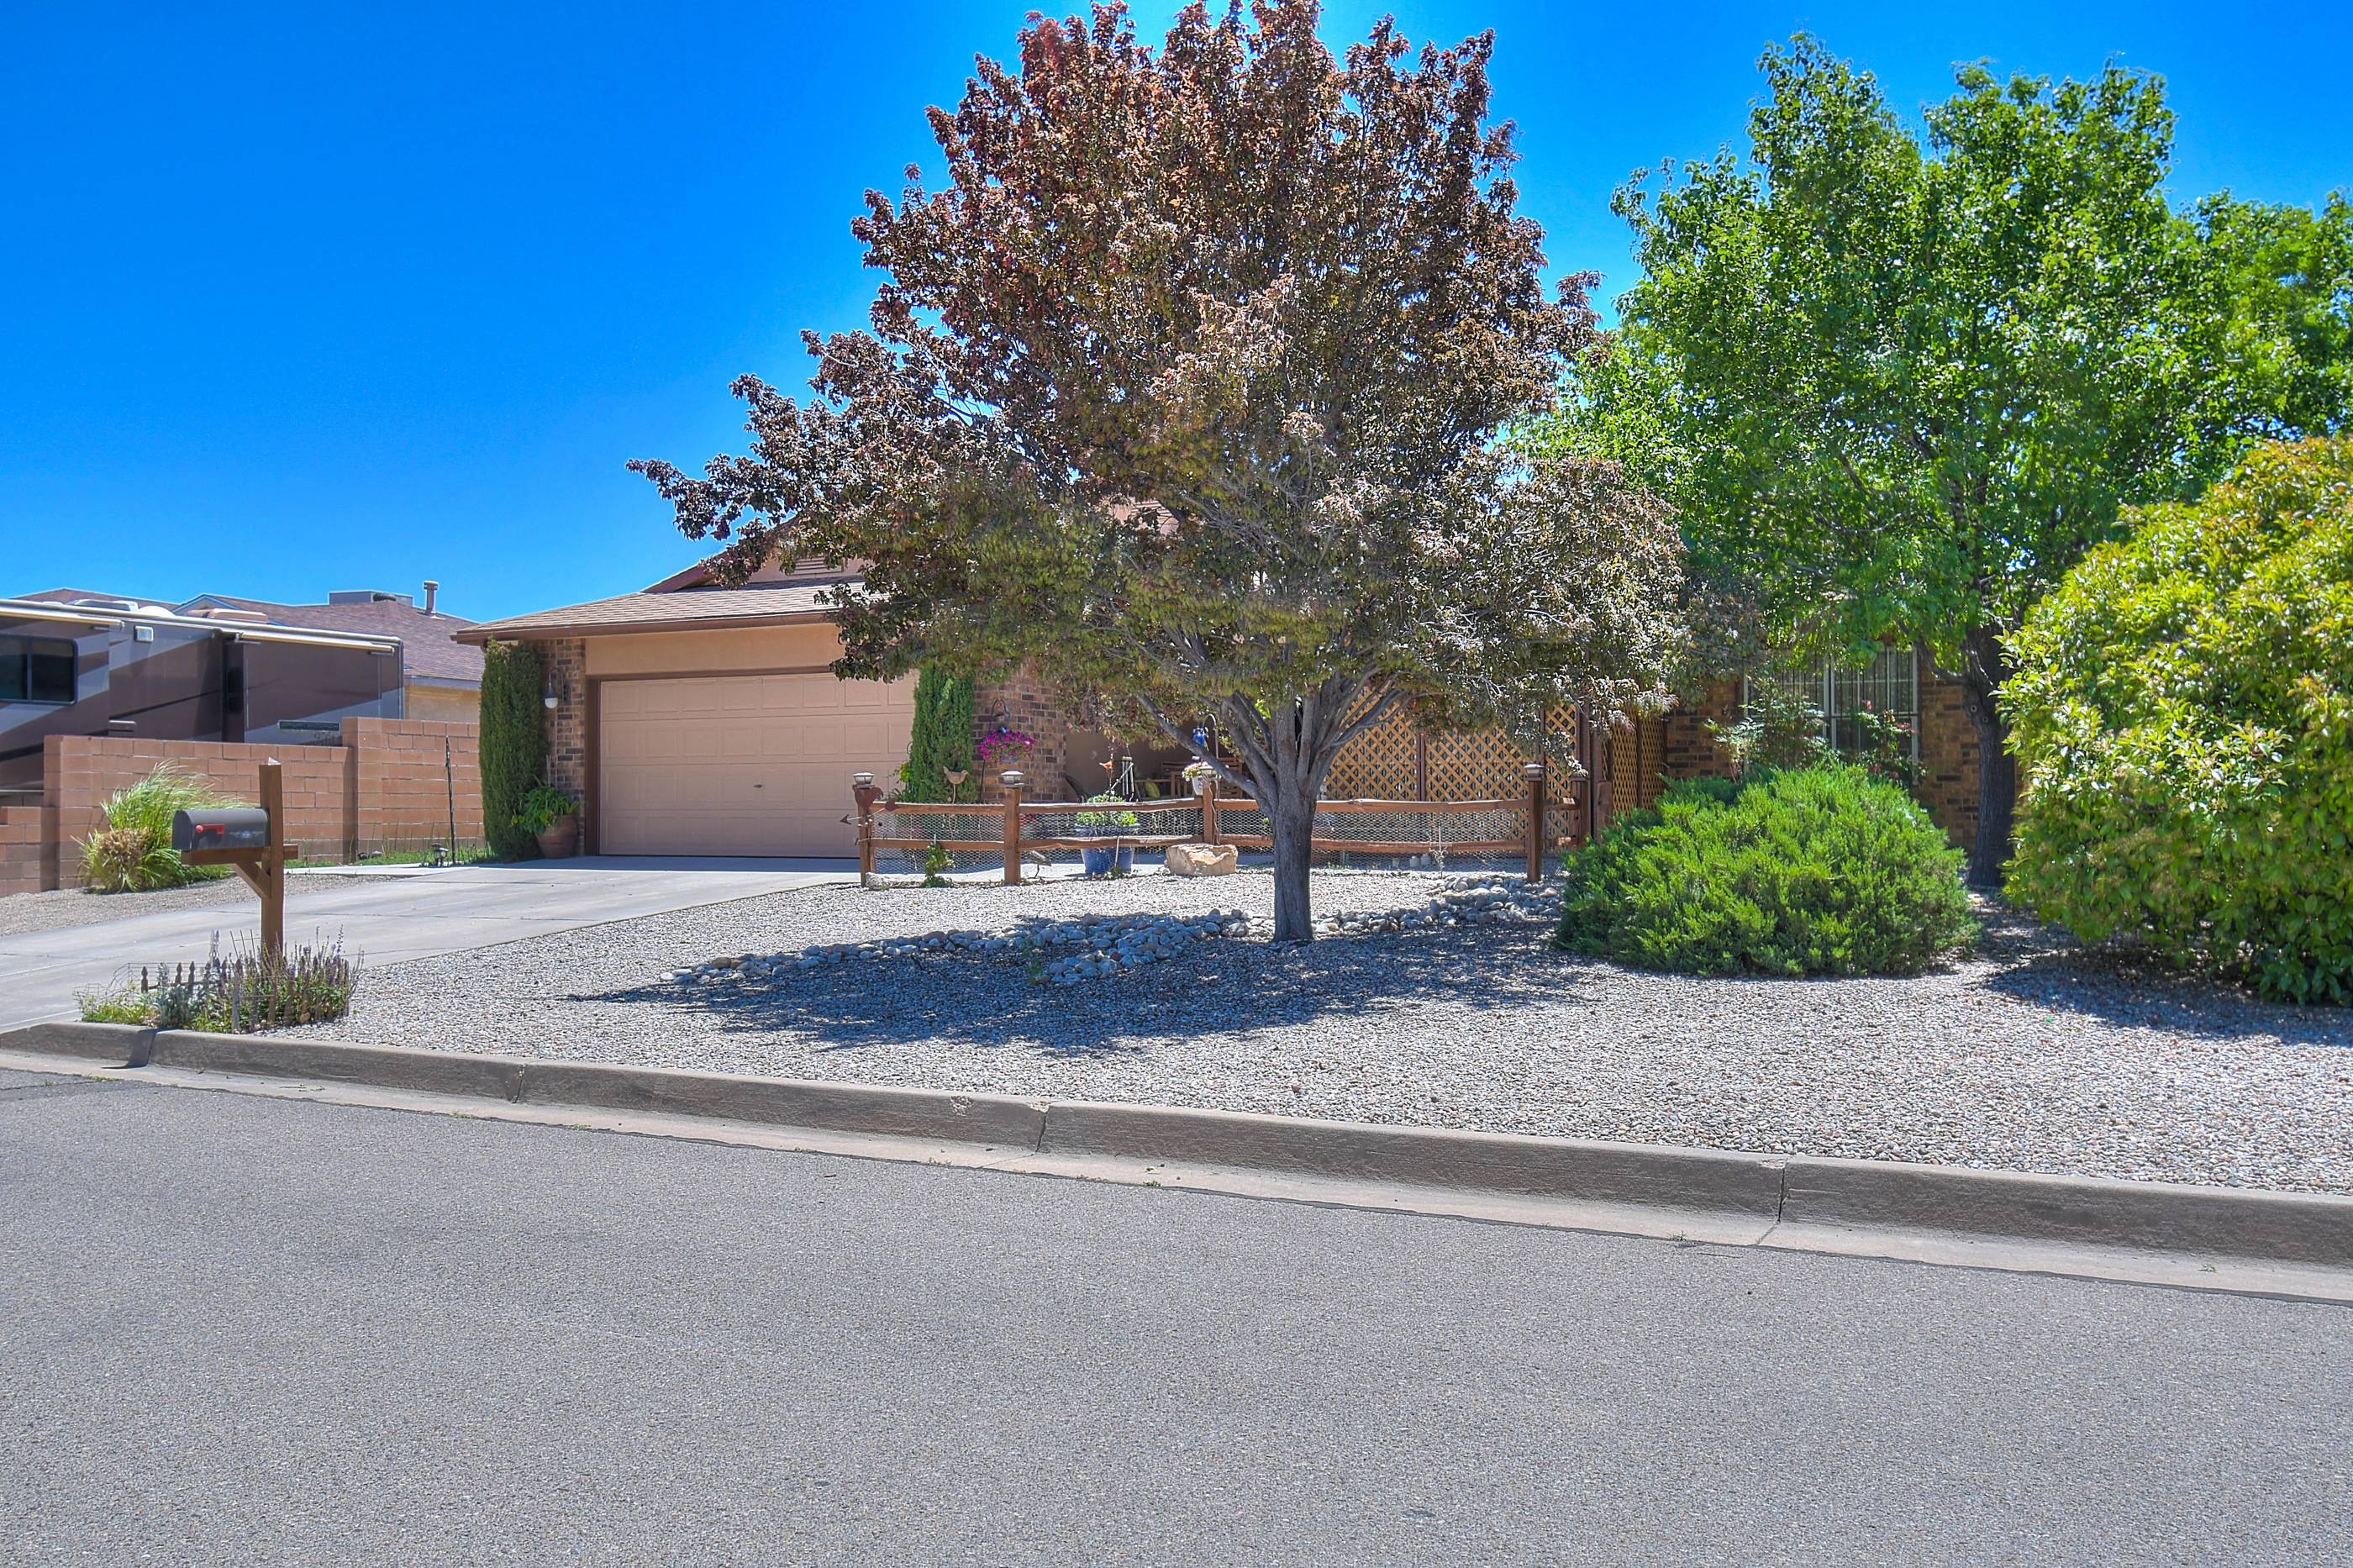 Dont miss out on this amazing home in Park West in Rio Rancho. This home features 1659 sq. ft 3 bedroom, 2 baths, a full 2 car garage PLUS a detached single car garage in the back! This remodeled home features updated windows, refrigerated air, and updated lighting. Kitchen features oak cabinets with plenty of storage and built-in pantry and tile backsplash. Kitchen opens to breakfast nook with bay window and full dining with sliding glass door to the well manicured backyard. Great room is finished with laminate wood floor and fireplace. The Master Suite features 2 big closets and a updated Master Bathroom with separate soaking tub and shower! Custom Vanity with split mirrors and low level lighting. Close to shopping, dining and the movie theater. Great Location in central Rio Rancho.